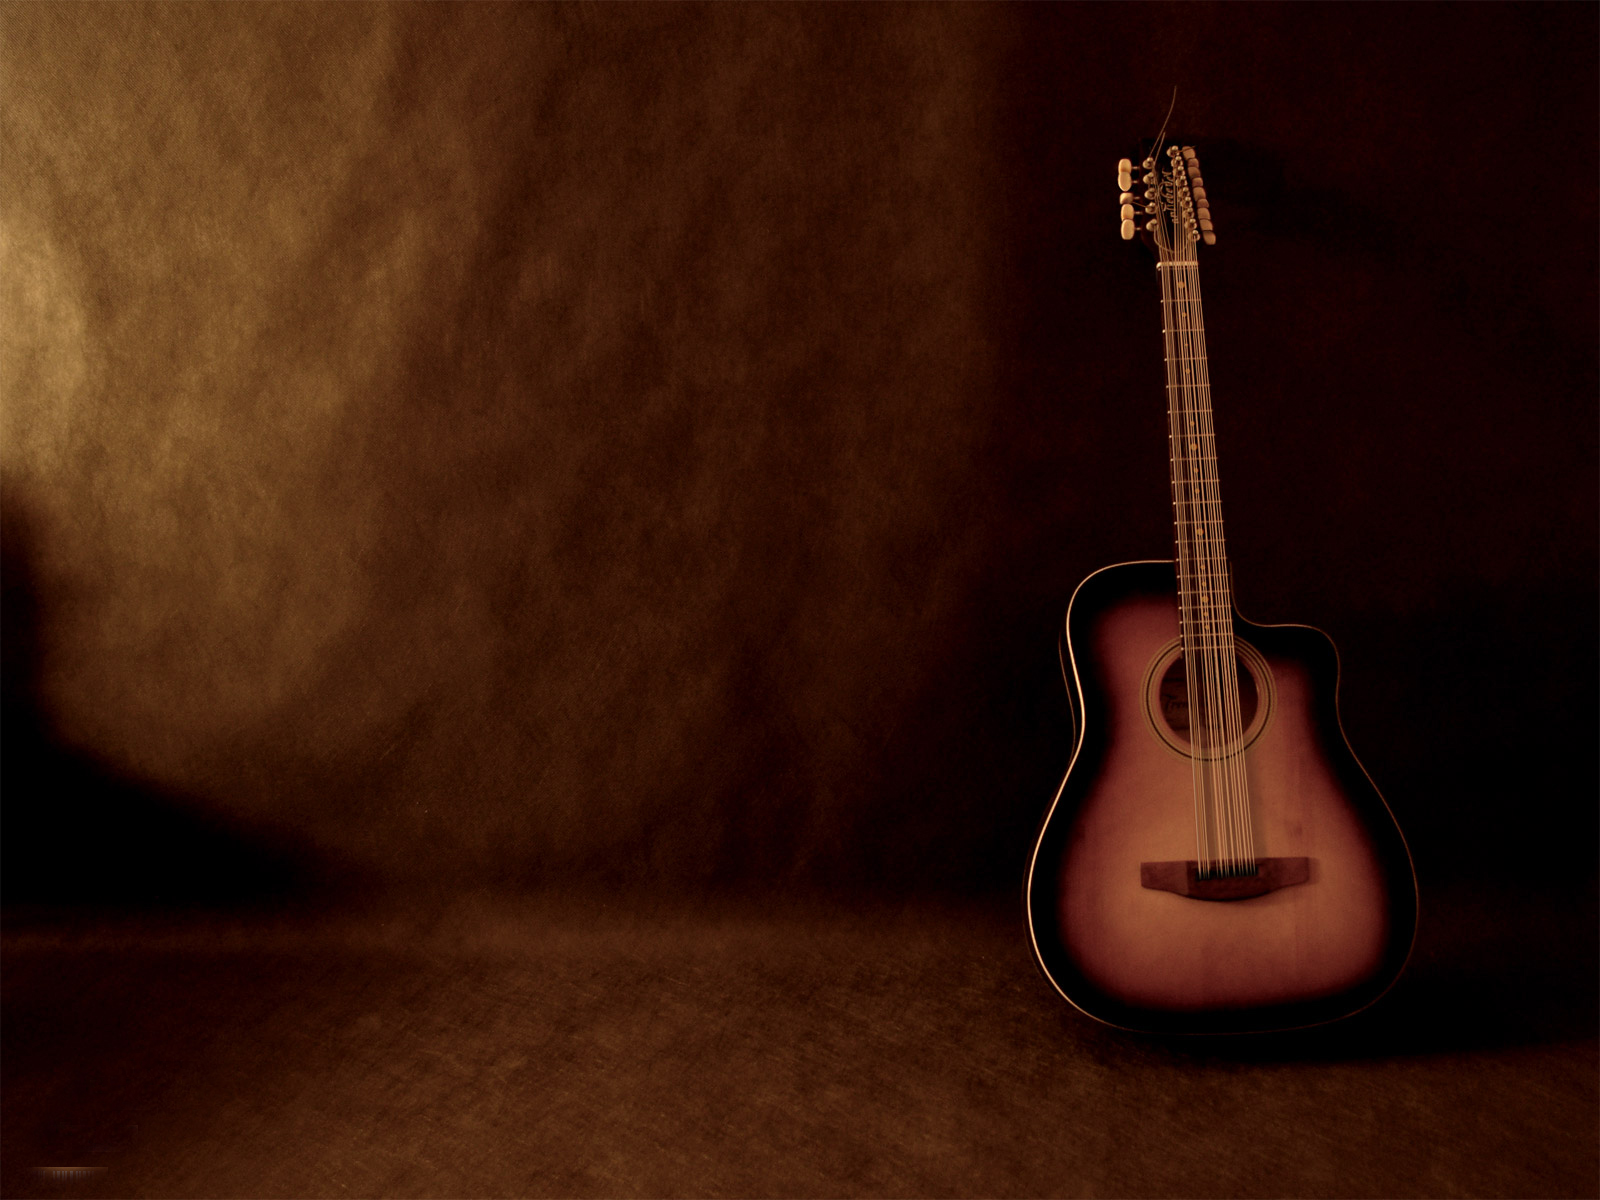 Free download wallpaper hd guitar musical instruments new hd images free download - Free guitar wallpapers for pc ...